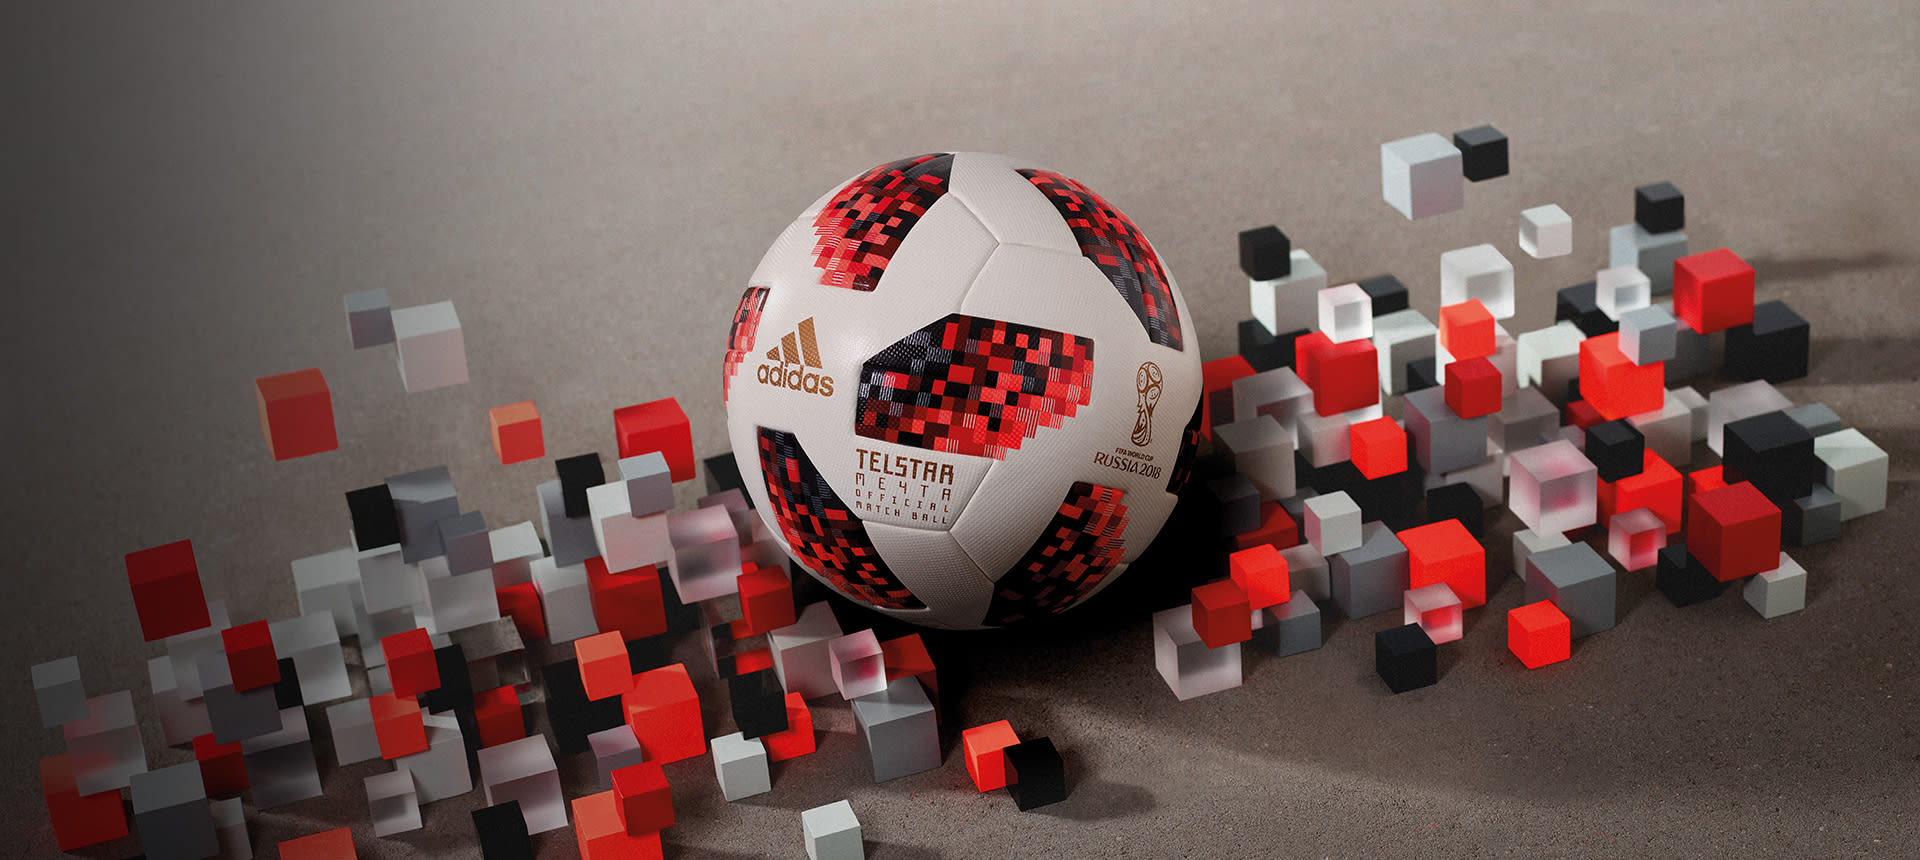 torneo al menos vertical  Telstar 18 | The Official Match Ball of the 2018 FIFA World Cup™